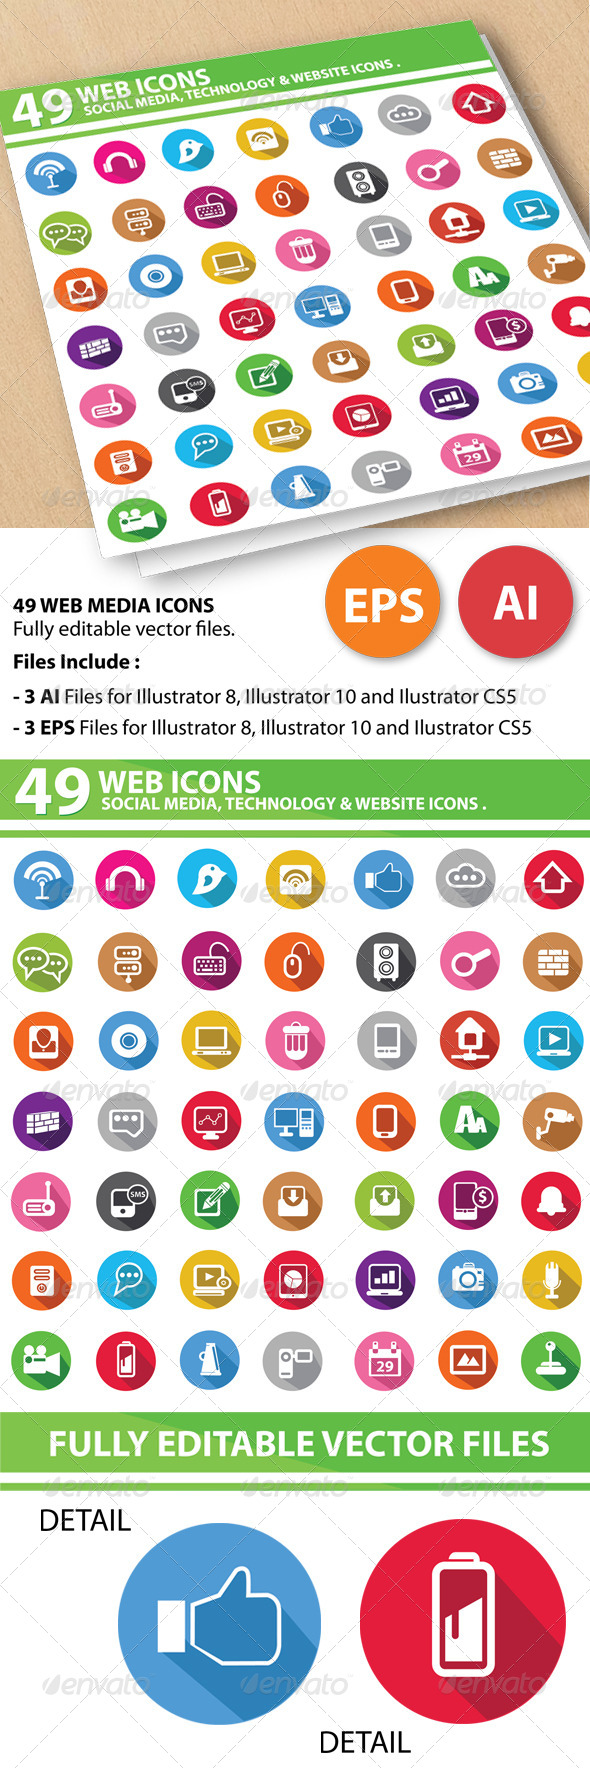 GraphicRiver 49 Web Media Icons 5774164